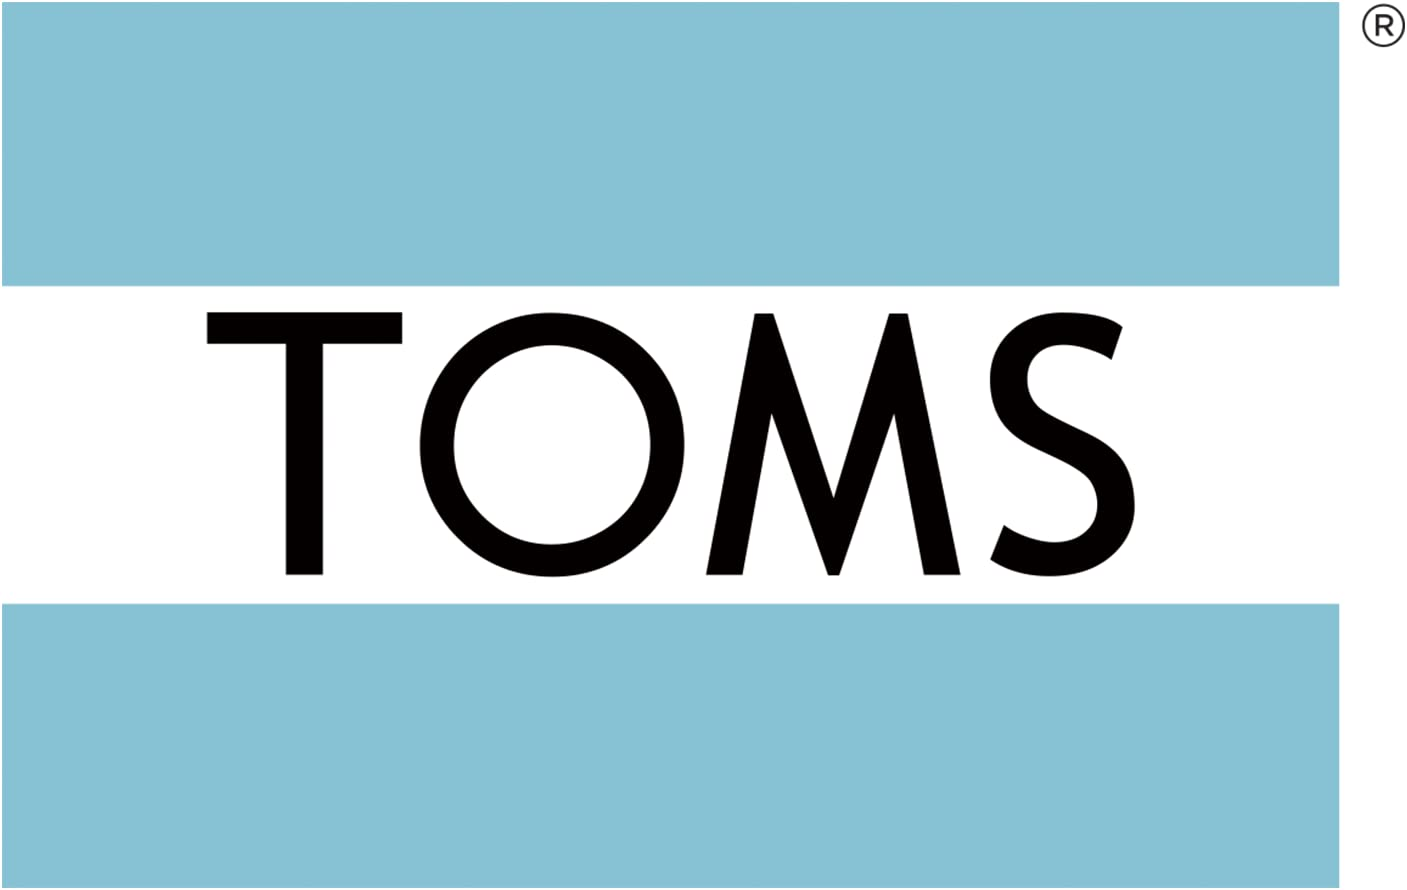 TOMS Shoes, LLC